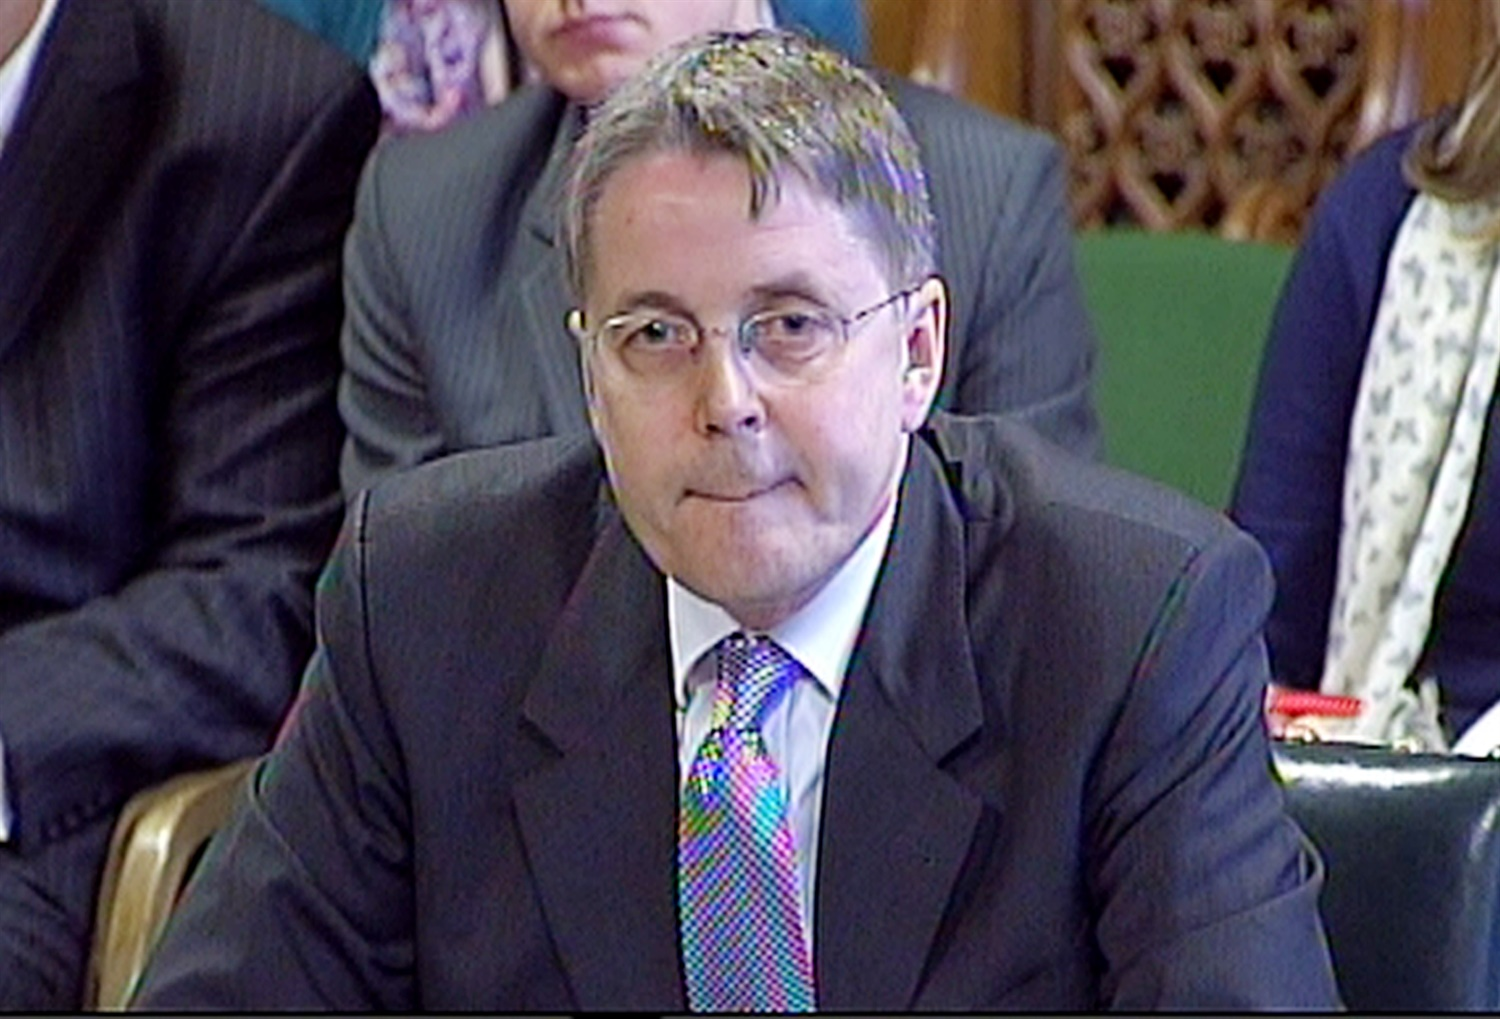 Sir Jeremy Heywood conducting review to ensure HS2 stays within budget